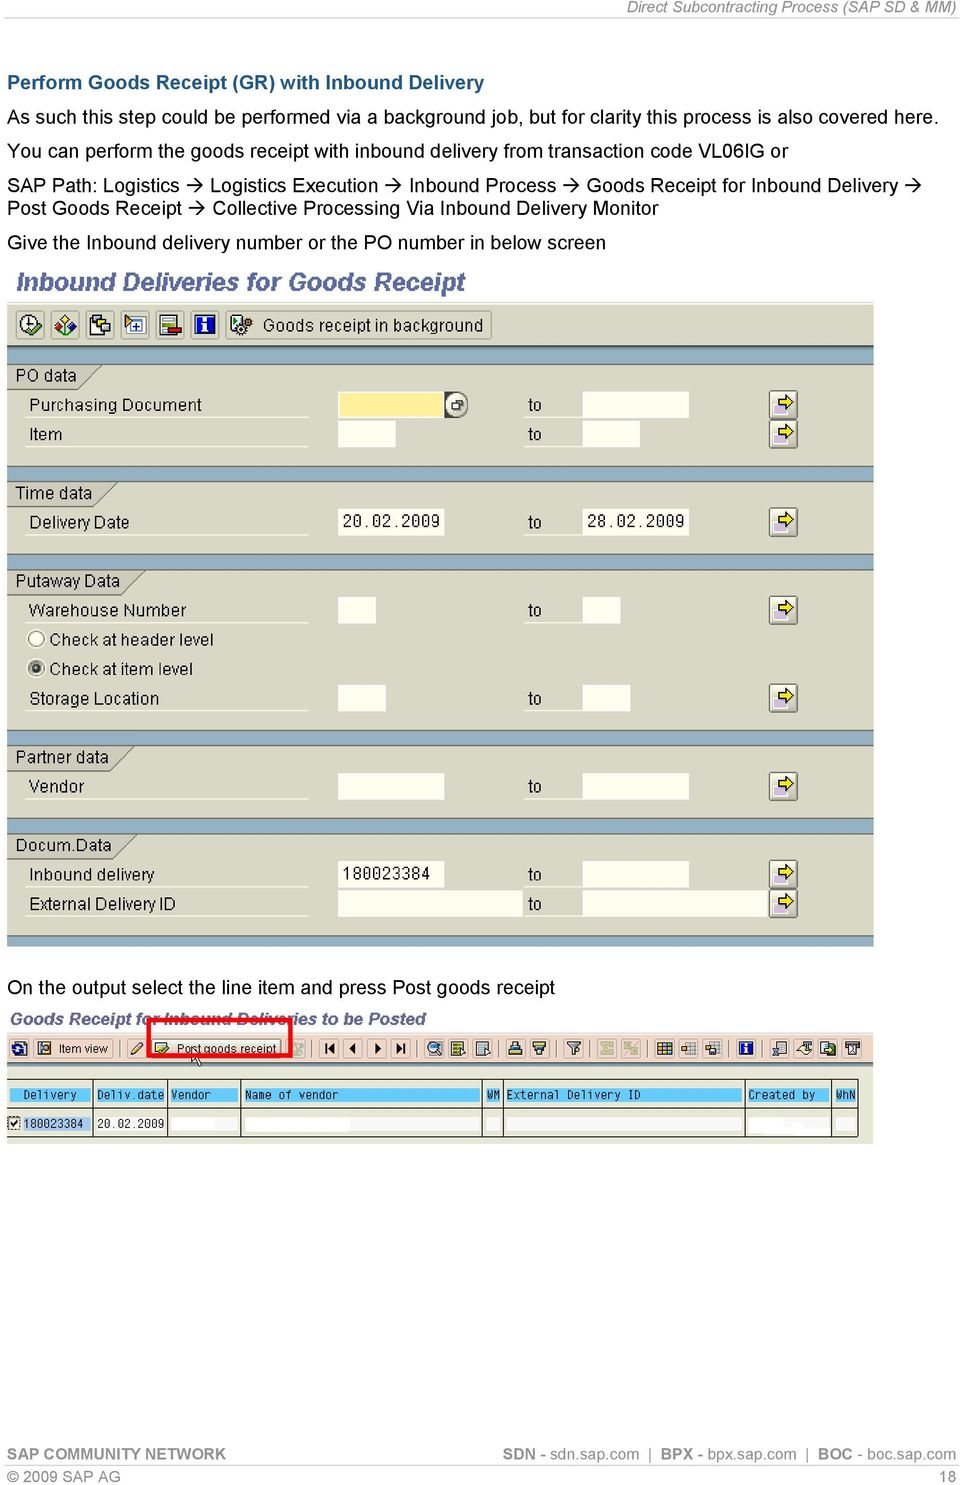 hight resolution of you can perform the goods receipt with inbound delivery from transaction code vl06ig or sap path